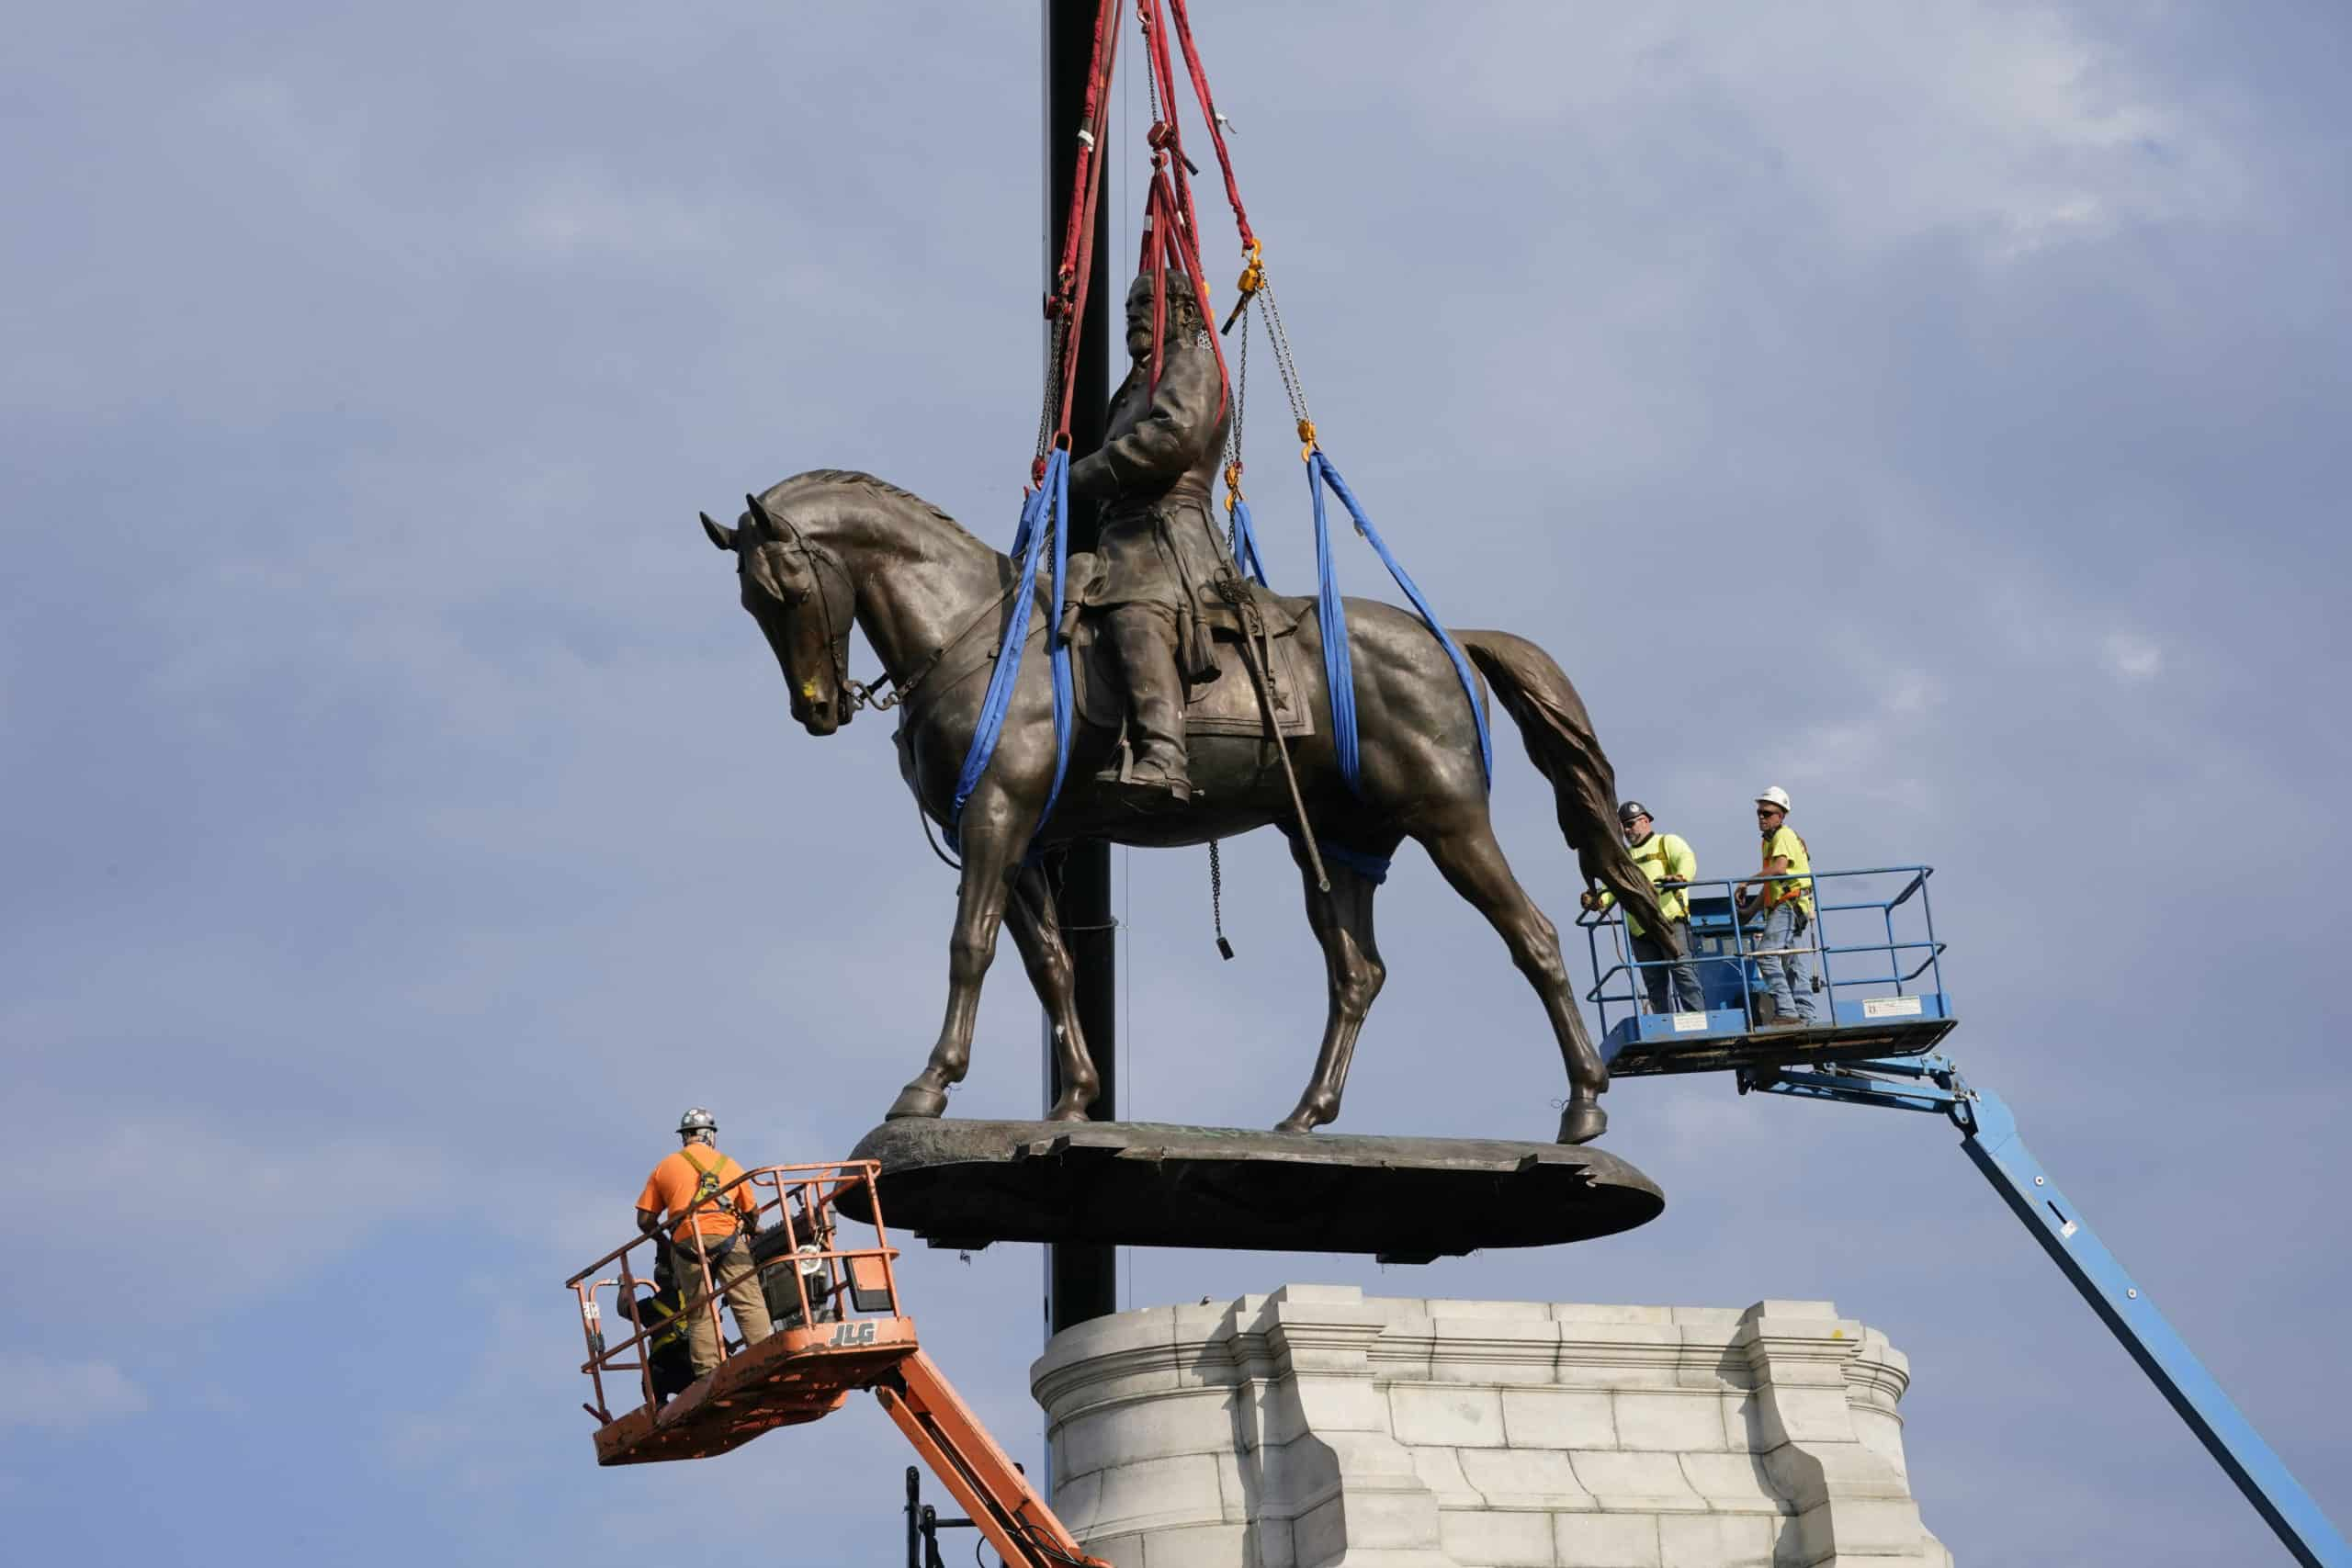 The statue of Confederate General Robert E. Lee was removed from Monument Avenue in Richmond, Virginia after a year of deliberation.